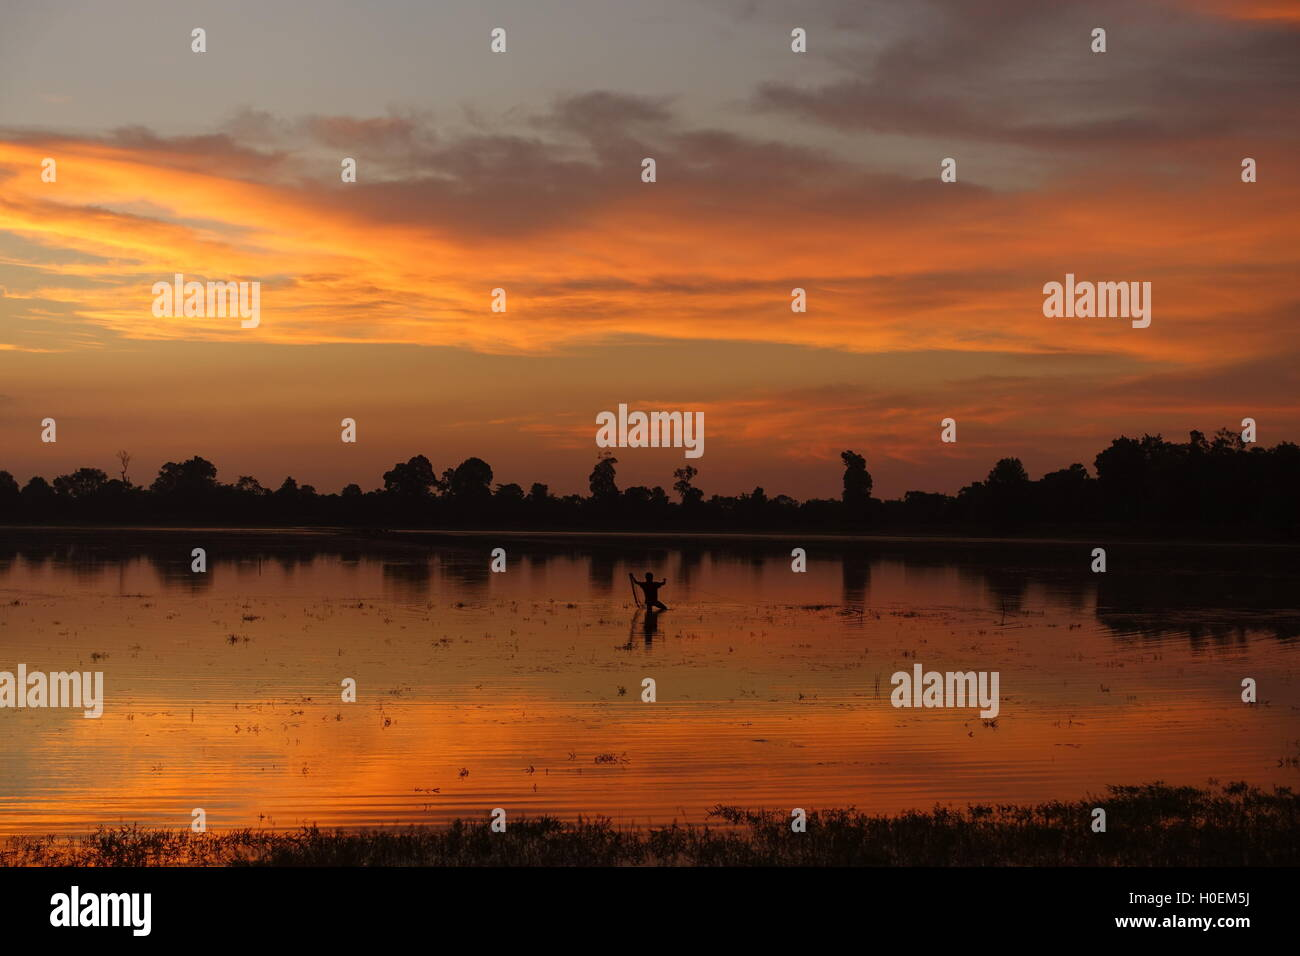 Man fishing in lake during sunrise in Siem Reap and Angkor Wat in Cambodia Stock Photo